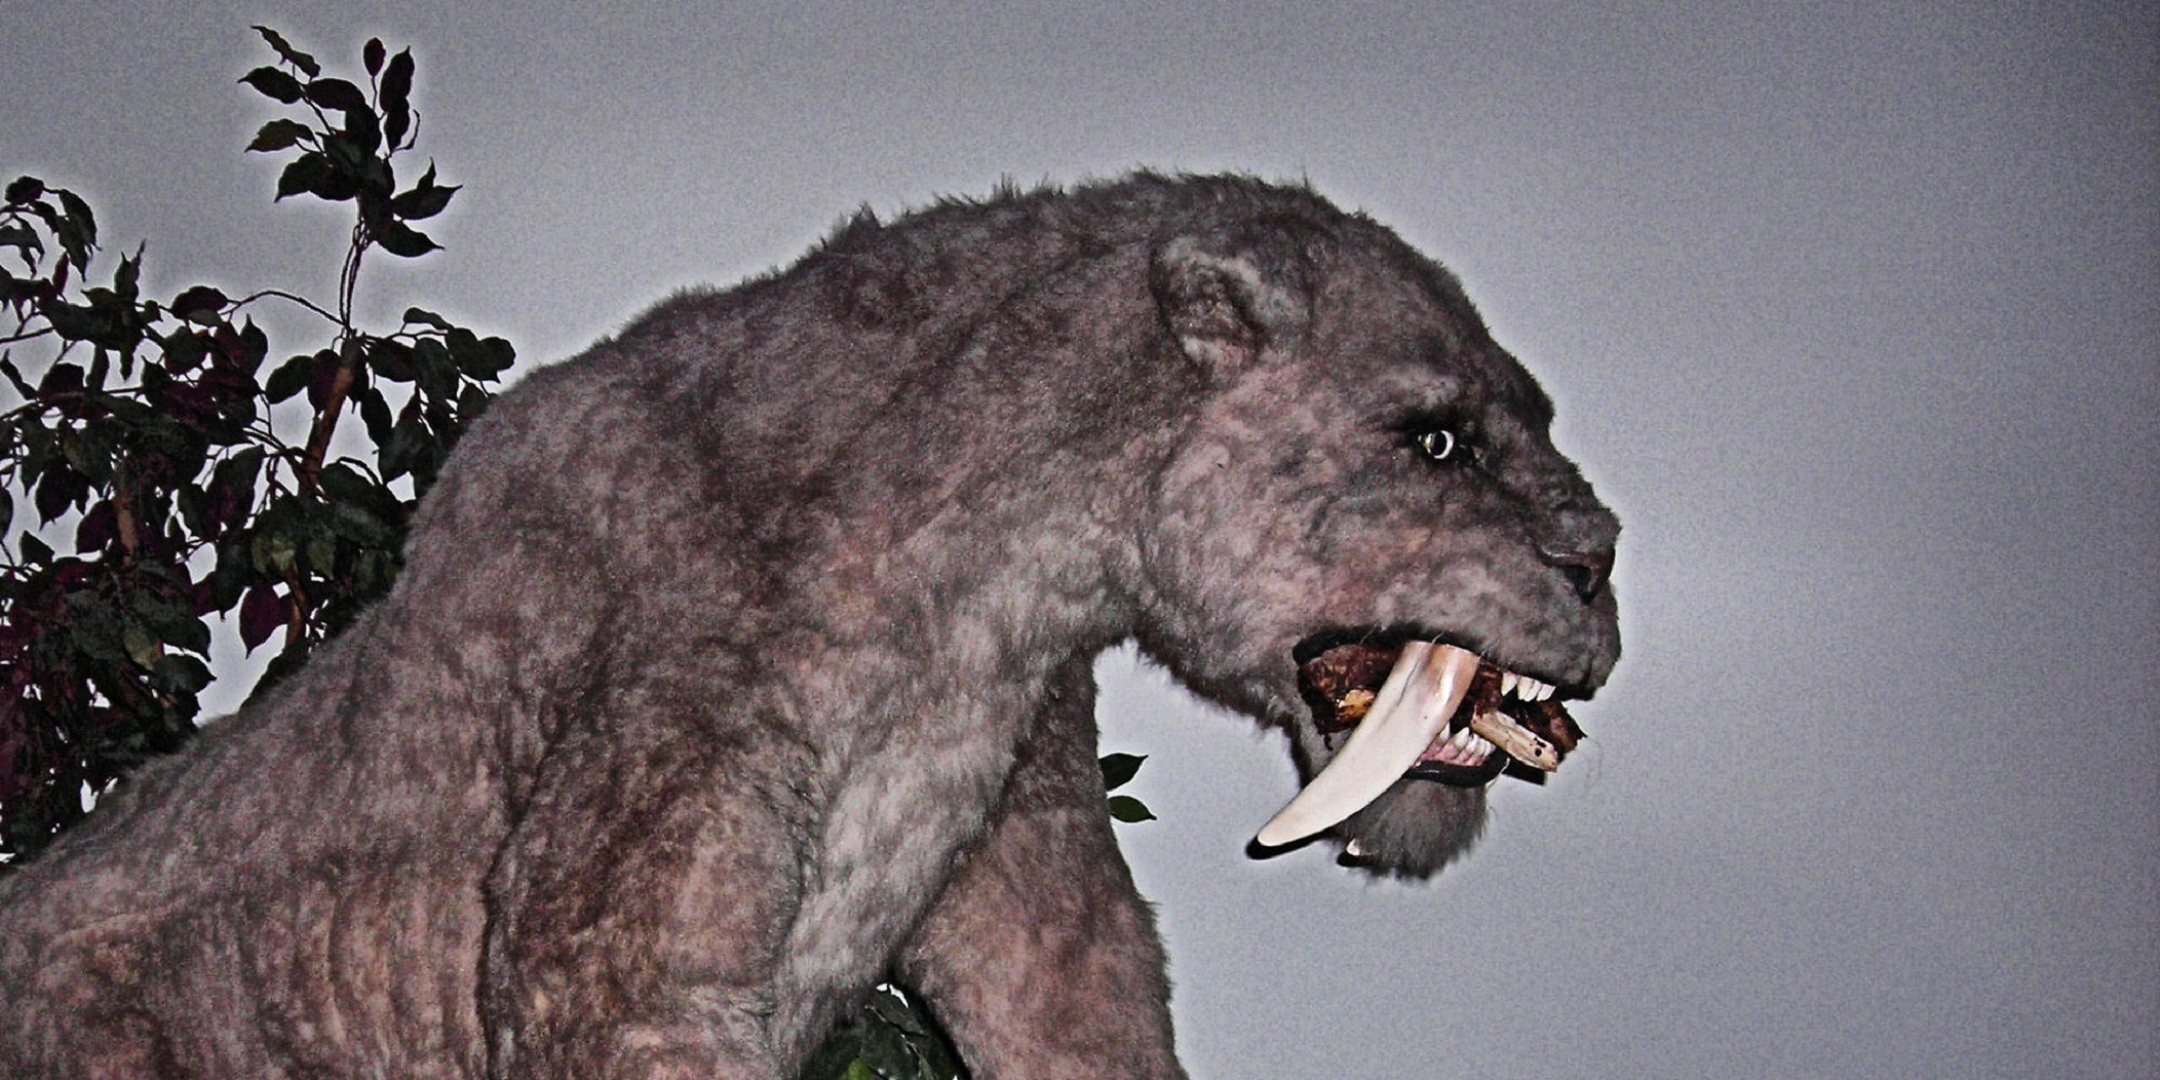 Sabre Toothed Tiger Images